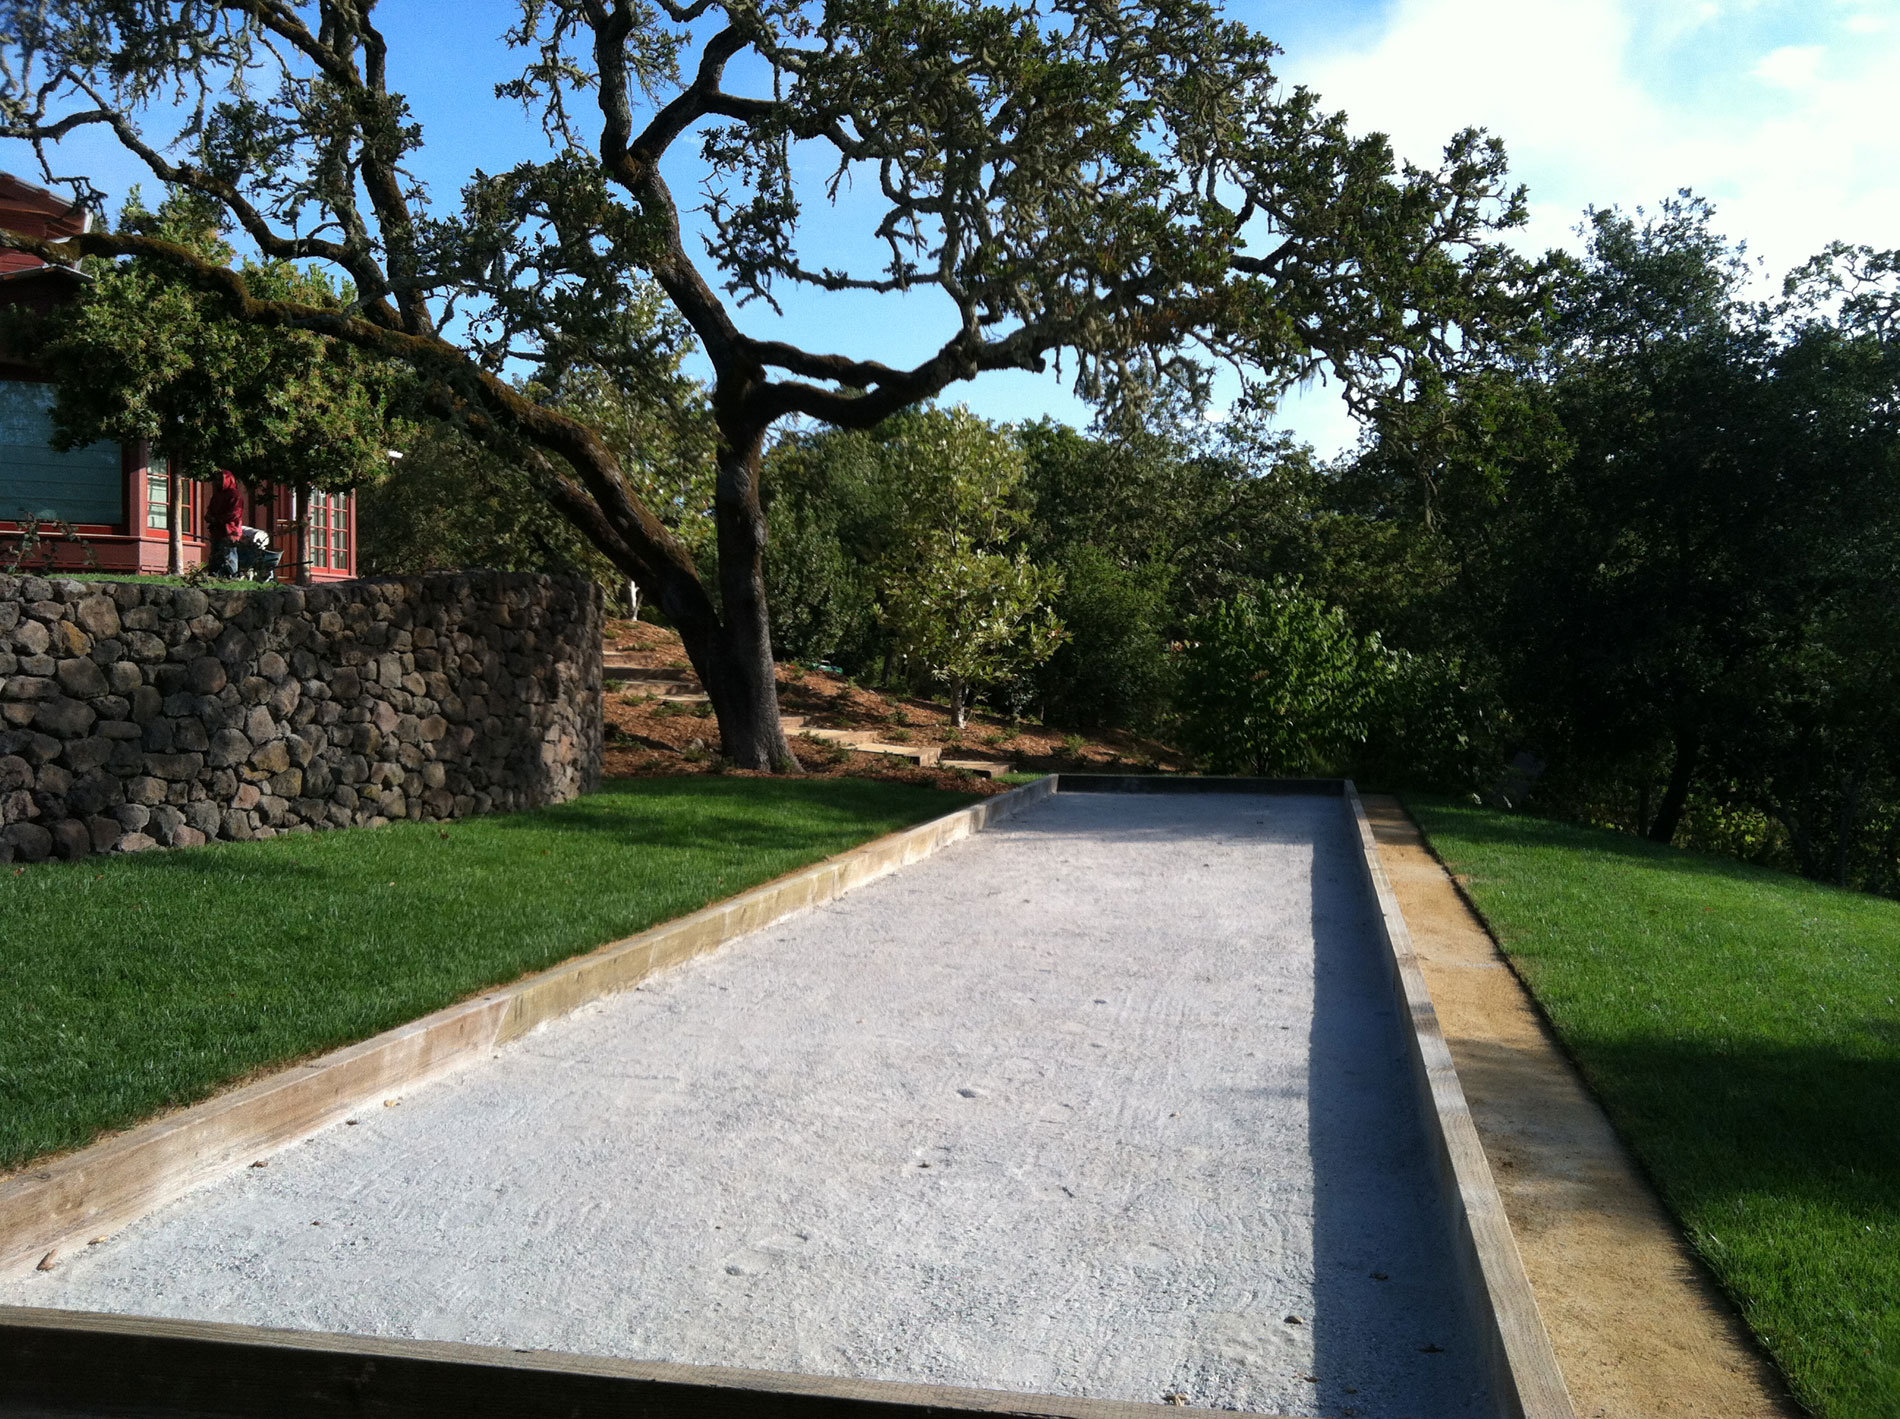 A bocce court was constructed on a terrace one level down from the pool terrace.